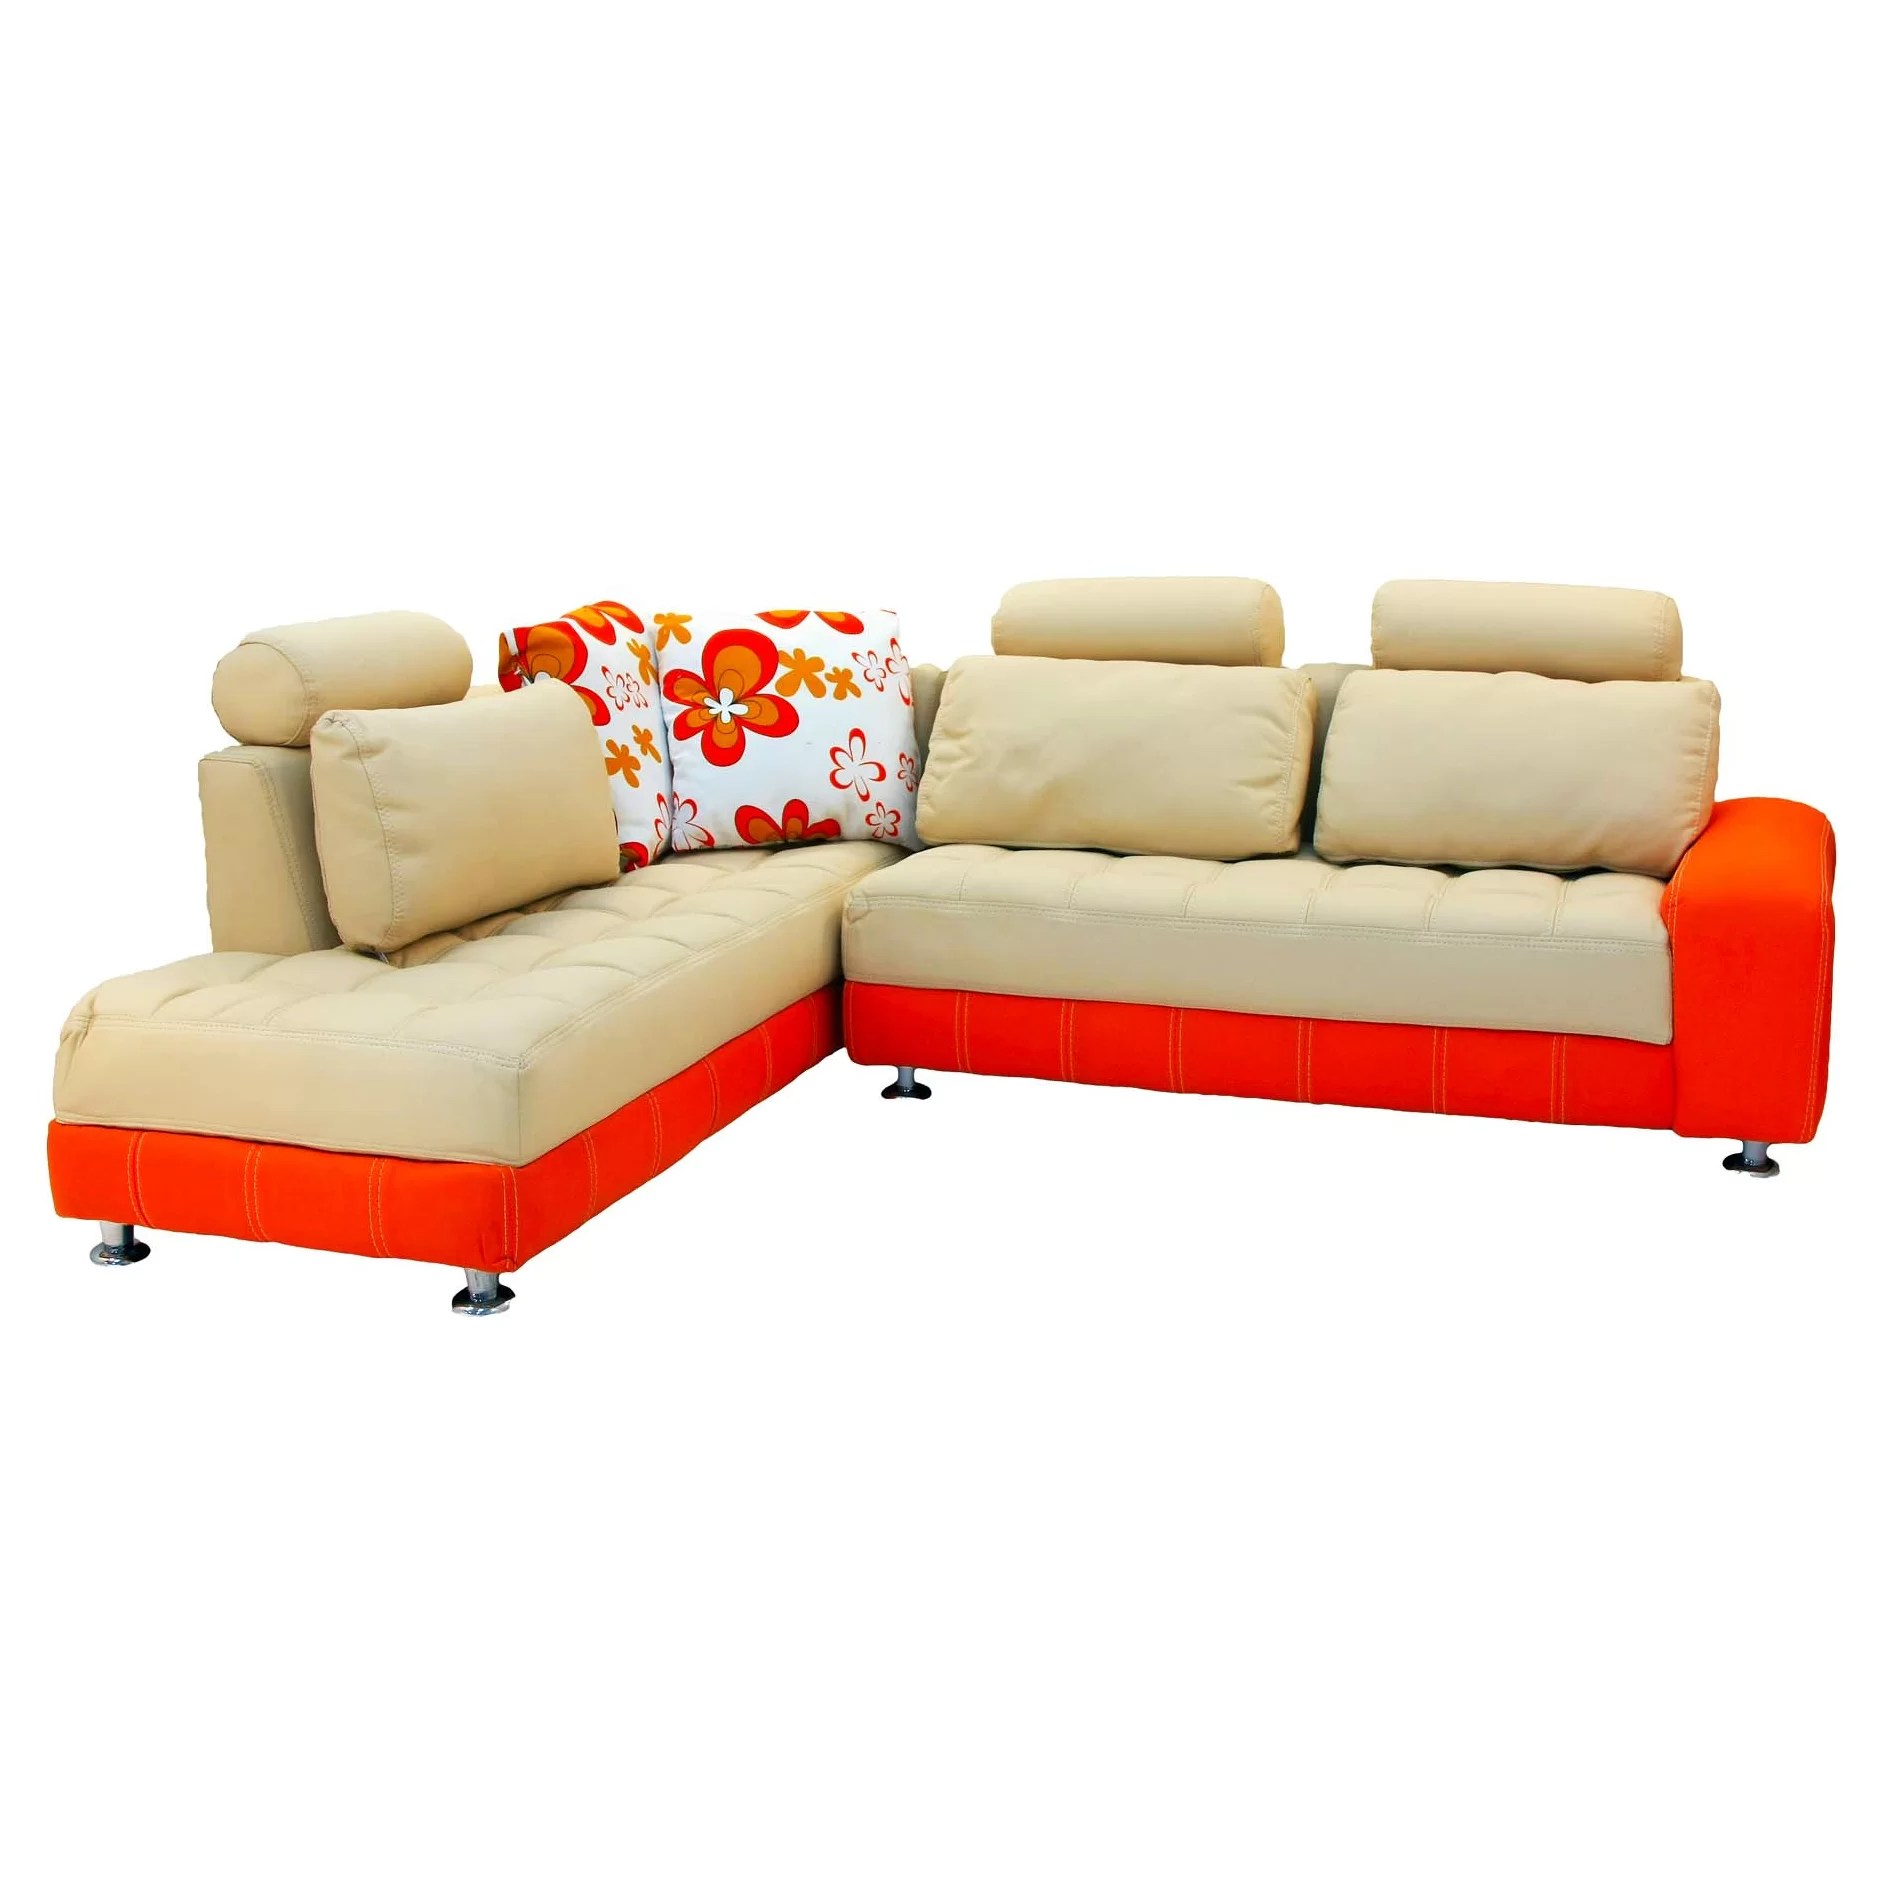 kids sofa set billie 2 piece storage bed with chaise a 43 child supply jessica and reviews